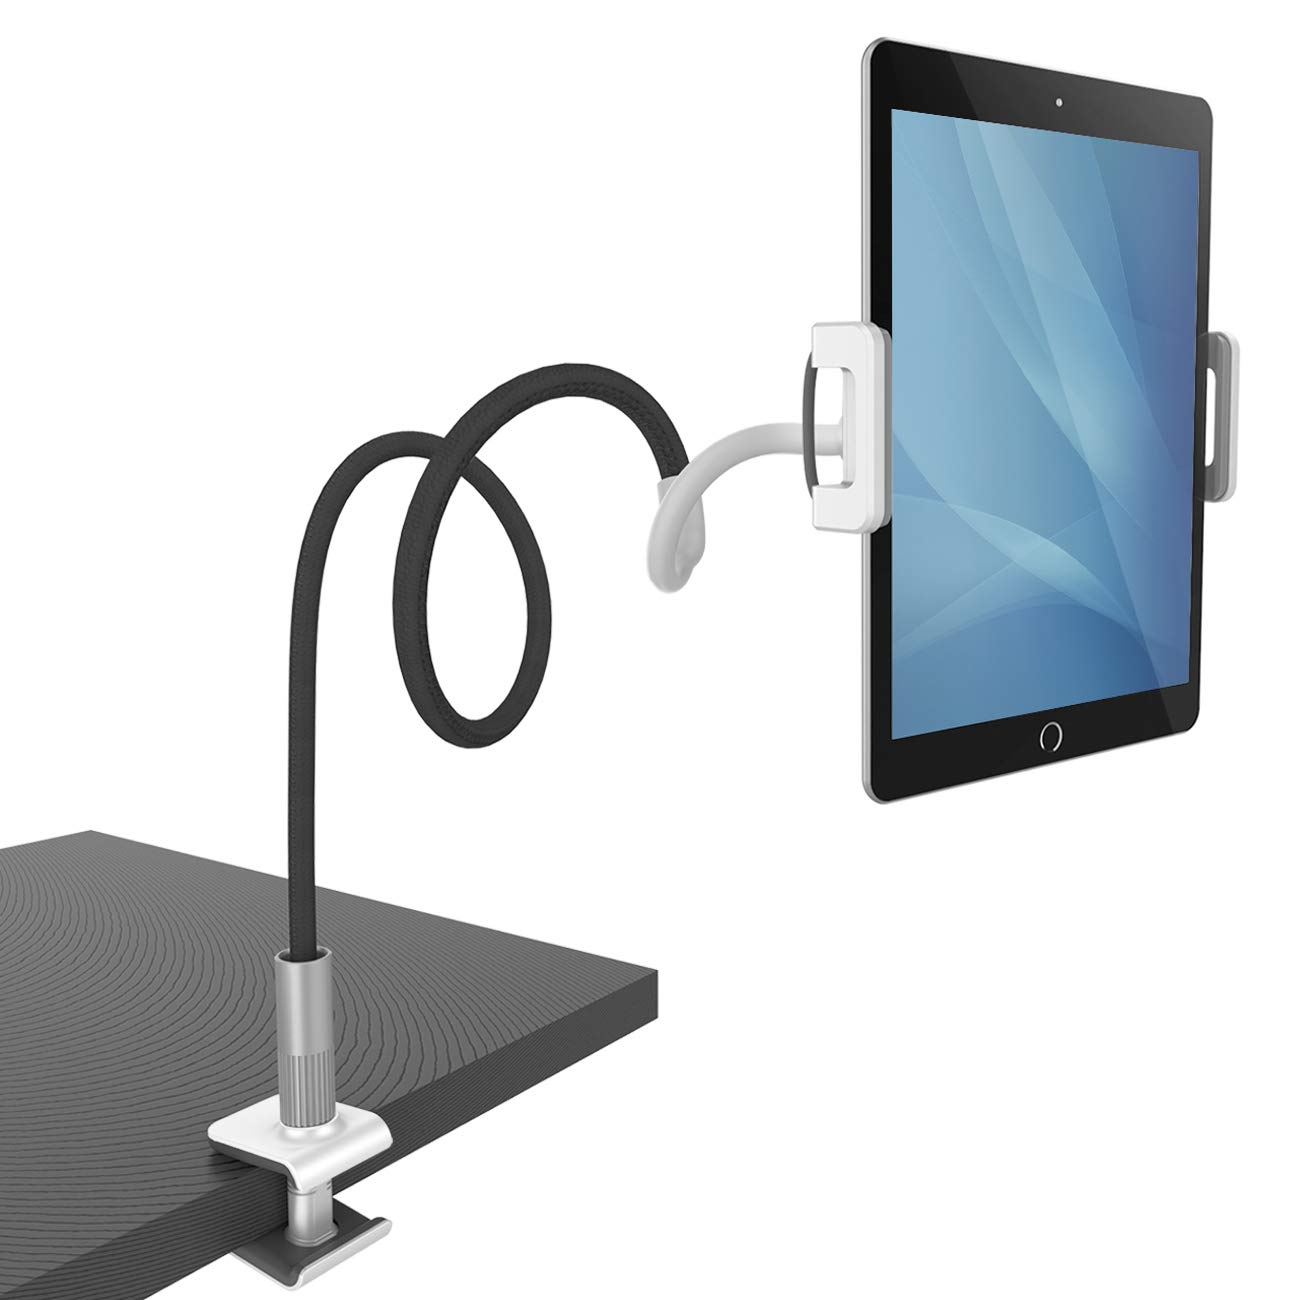 "Gooseneck Tablet Holder, Lamicall Tablet Mount : Flexible Arm Tablet Stand Compatible with iPad Mini, Pro, Air, Nintendo Switch, Samsung Galaxy Tabs, More 4.7-10.5"" Devices - Black"